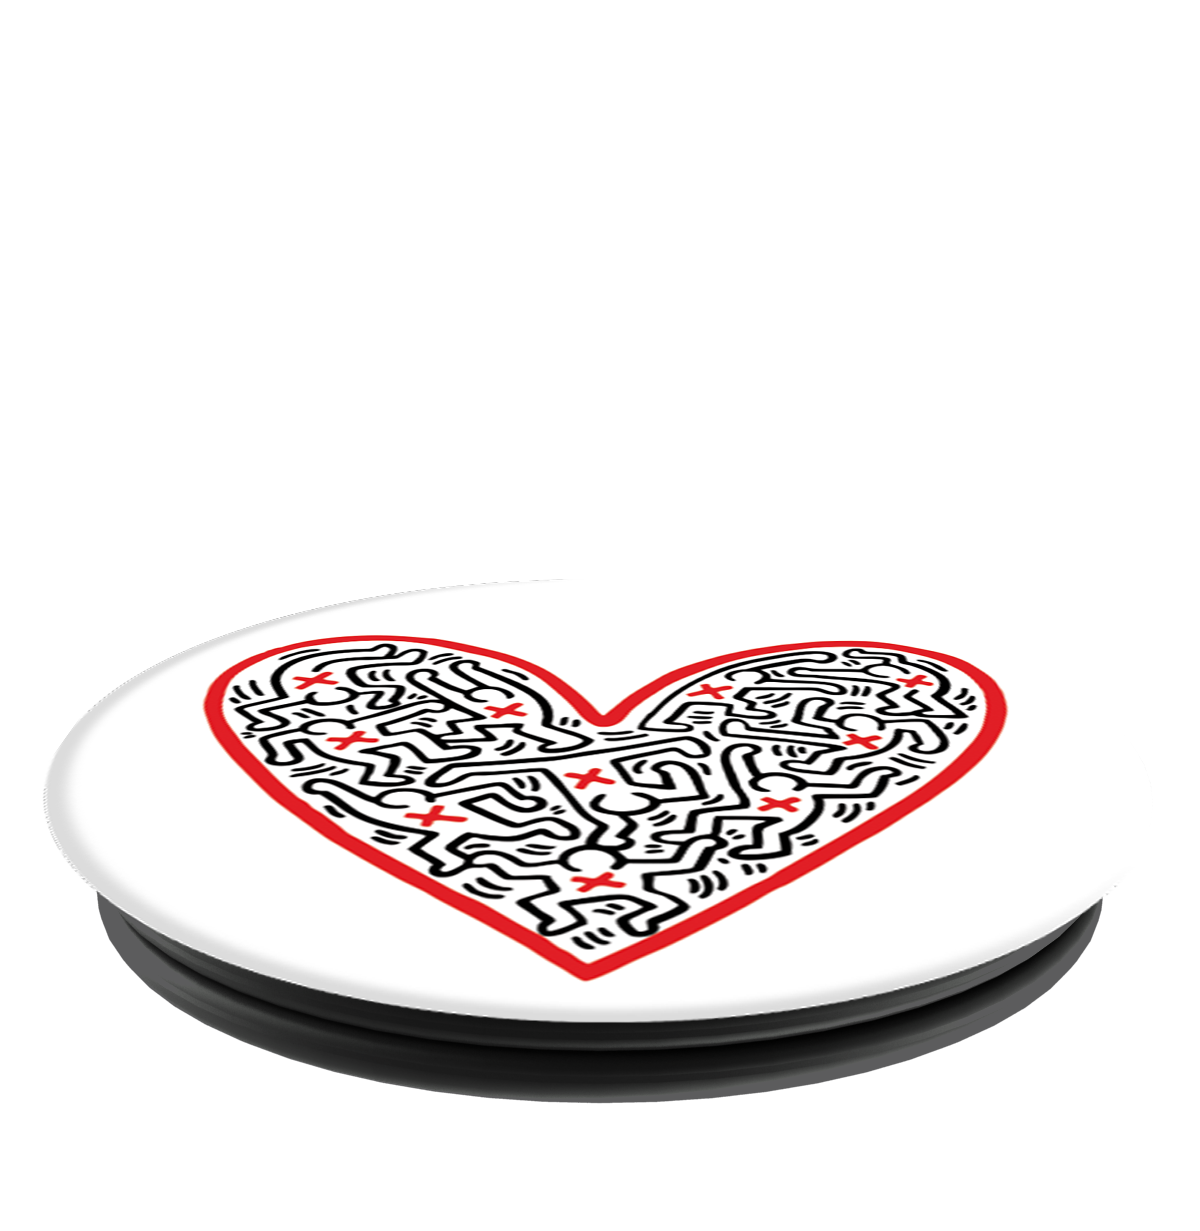 PopSockets Grip Keith Haring- Figures In A Heart